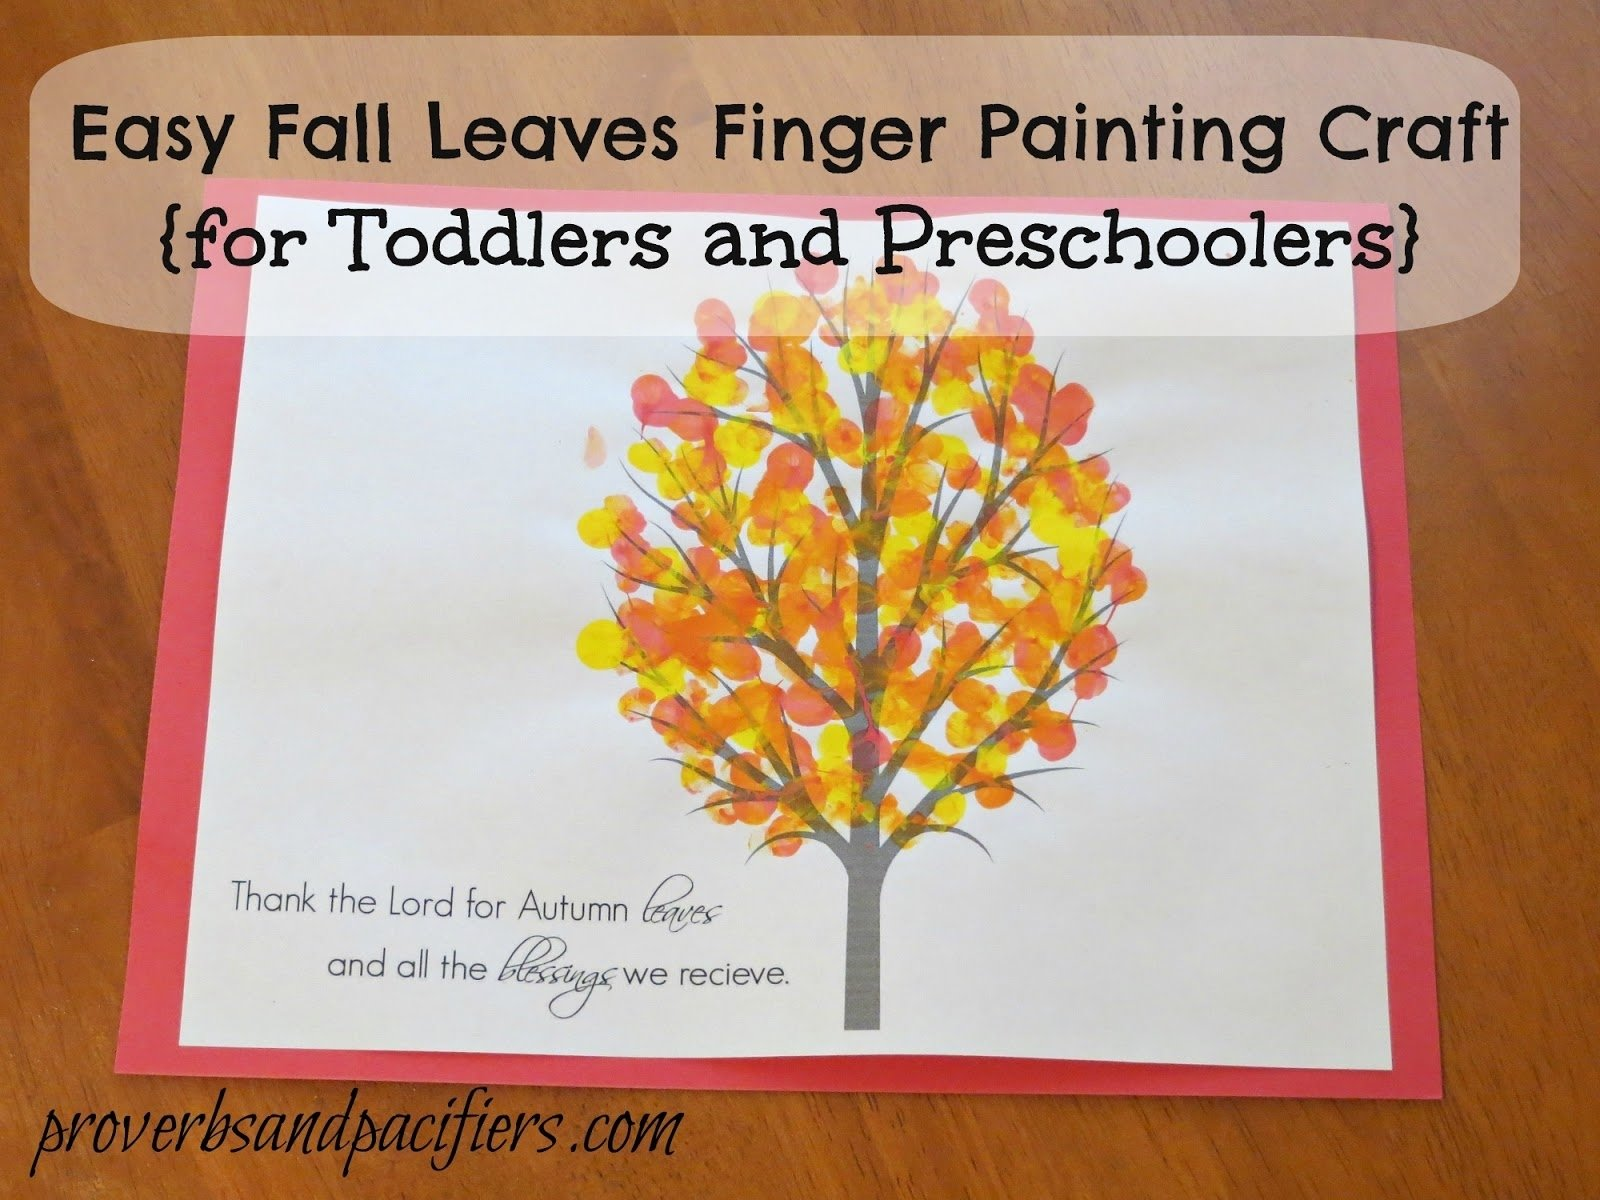 10 Ideal Craft Ideas For 2 Year Olds proverbs and pacifiers easy fall leaves finger painting craft free 1 2020